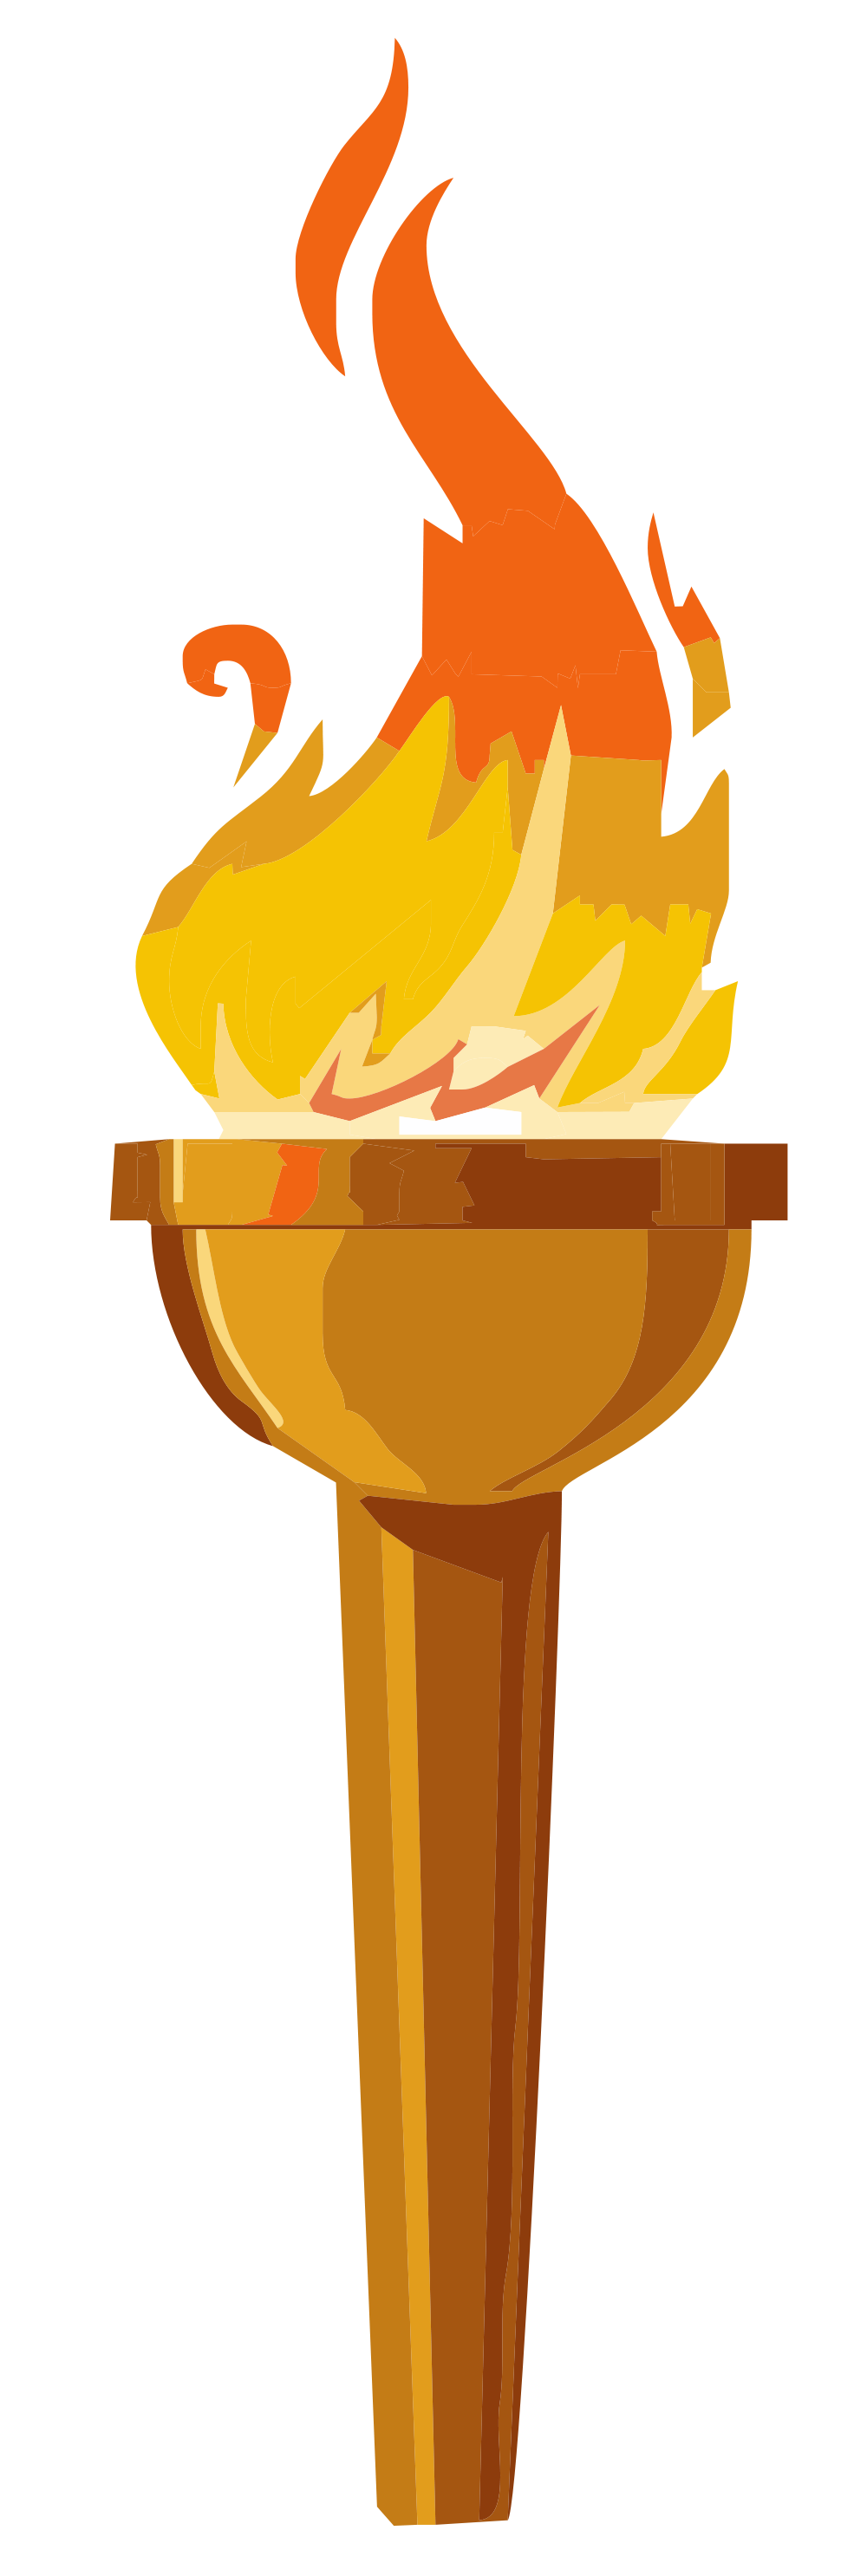 Fire png images free. Torch clipart torch book